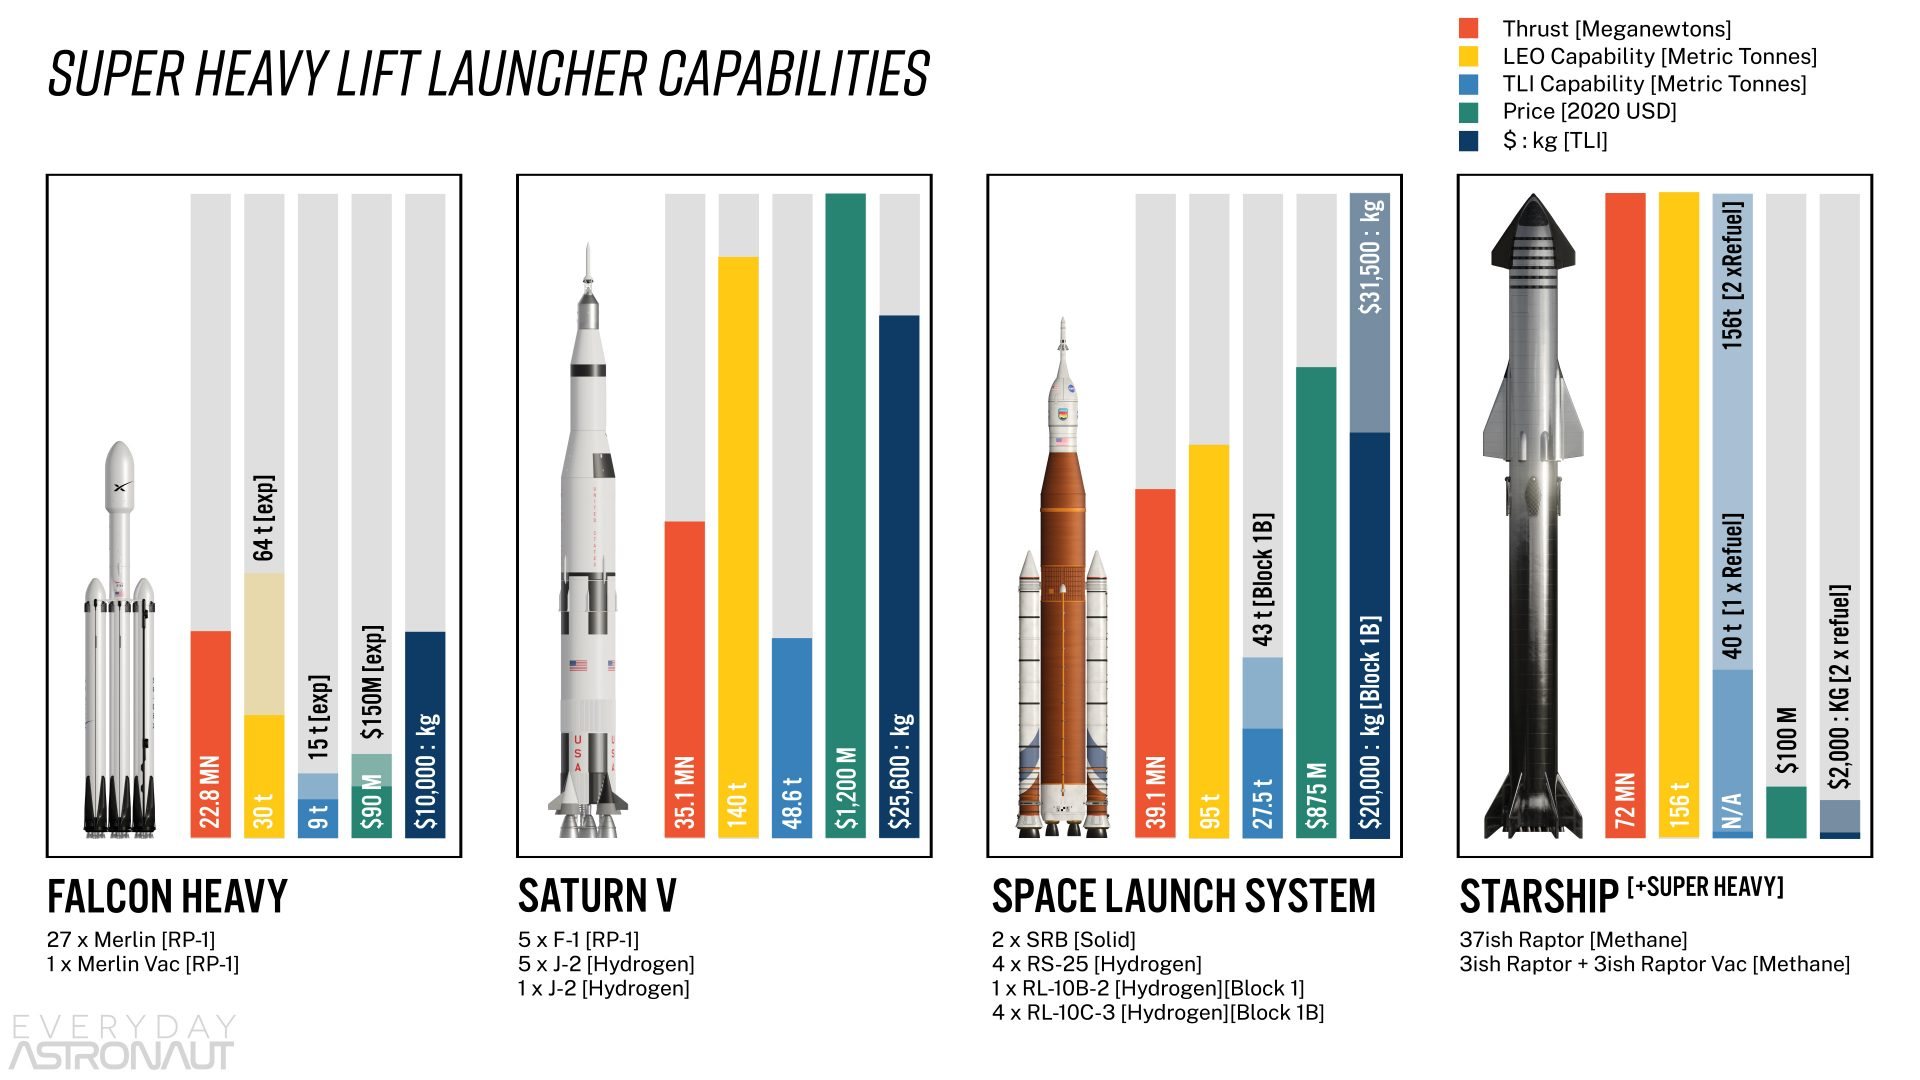 Super Heavy Lift Launcher Capabilities Falcon Heavy vs Saturn V vs SLS vs Starship